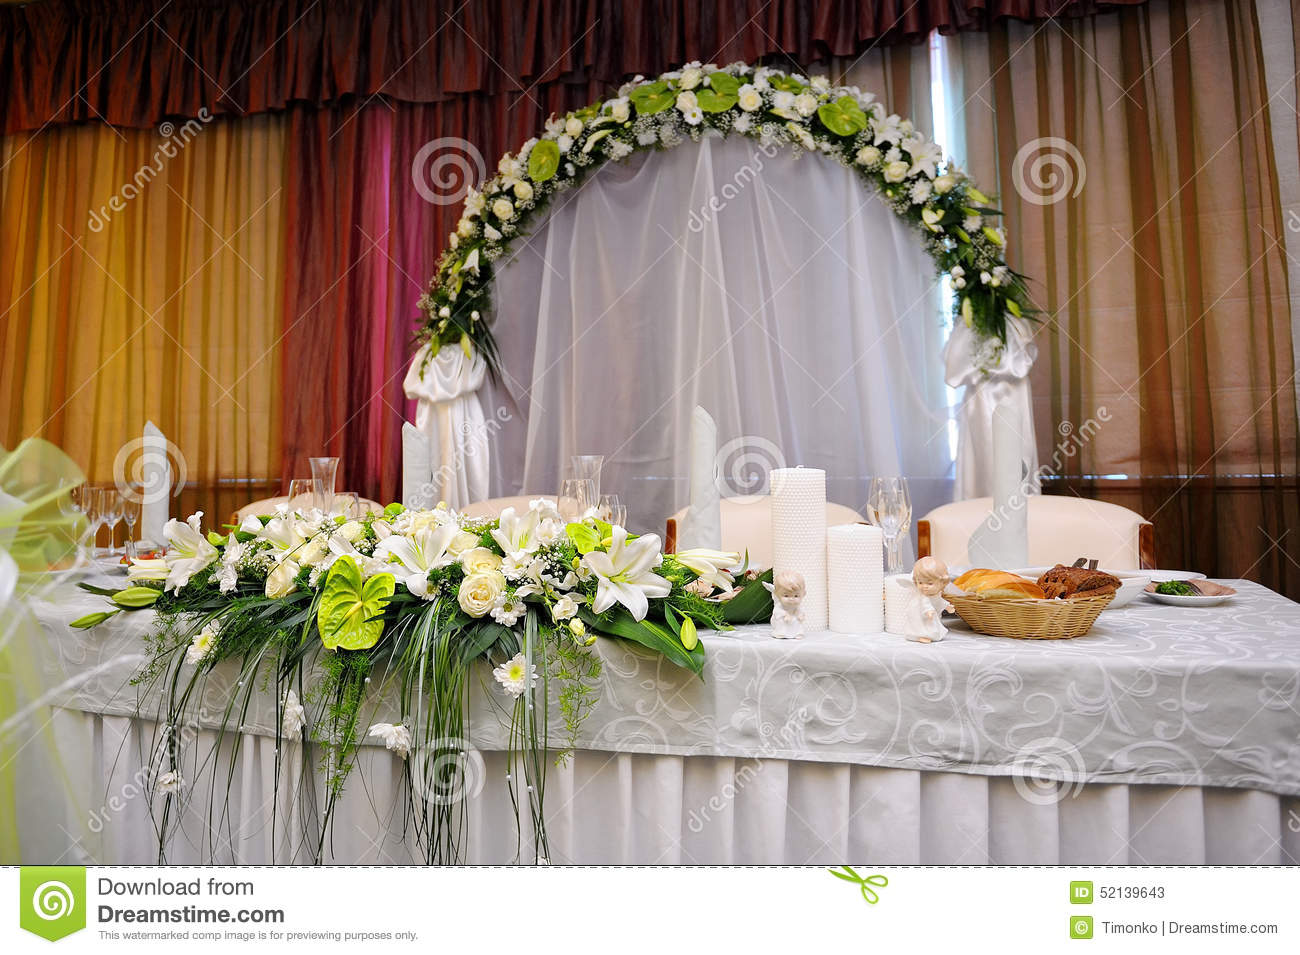 White Bouquet Of Flowers On A Festive Table Bride And Groom. Dinner, Dish.